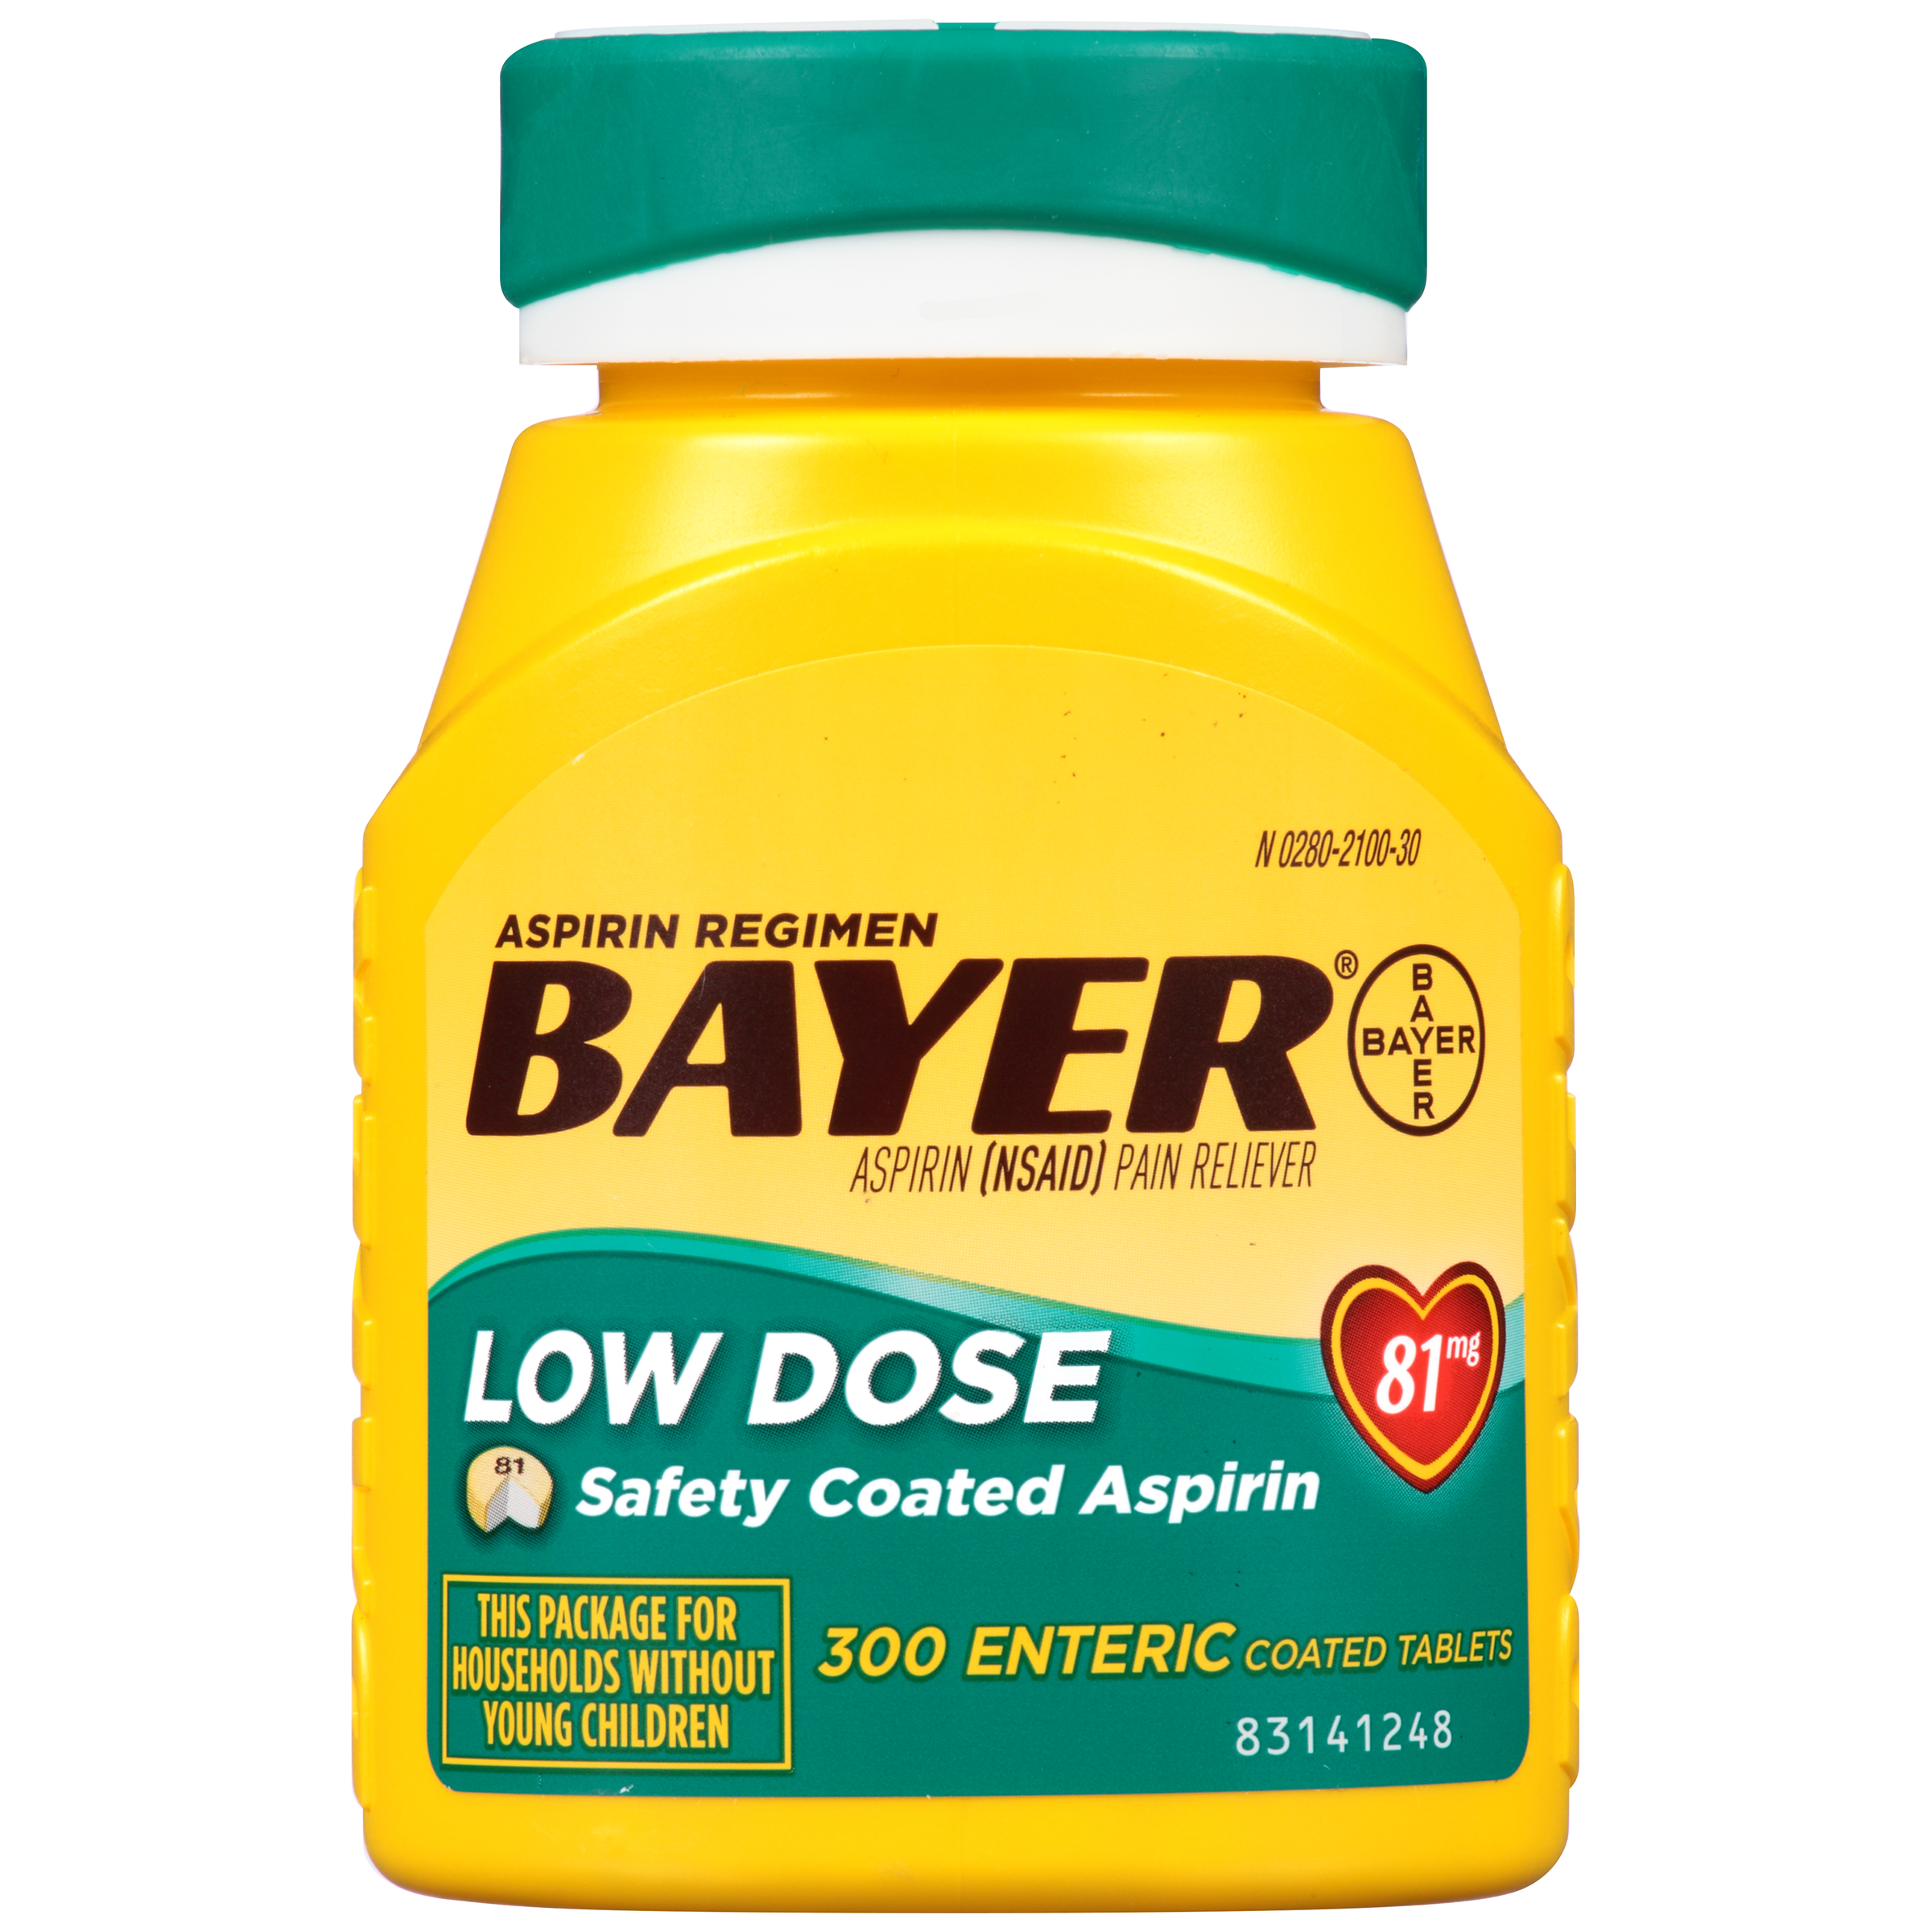 Aspirin Low Dose 81 mg Enteric Coated Tablets 300 tablets